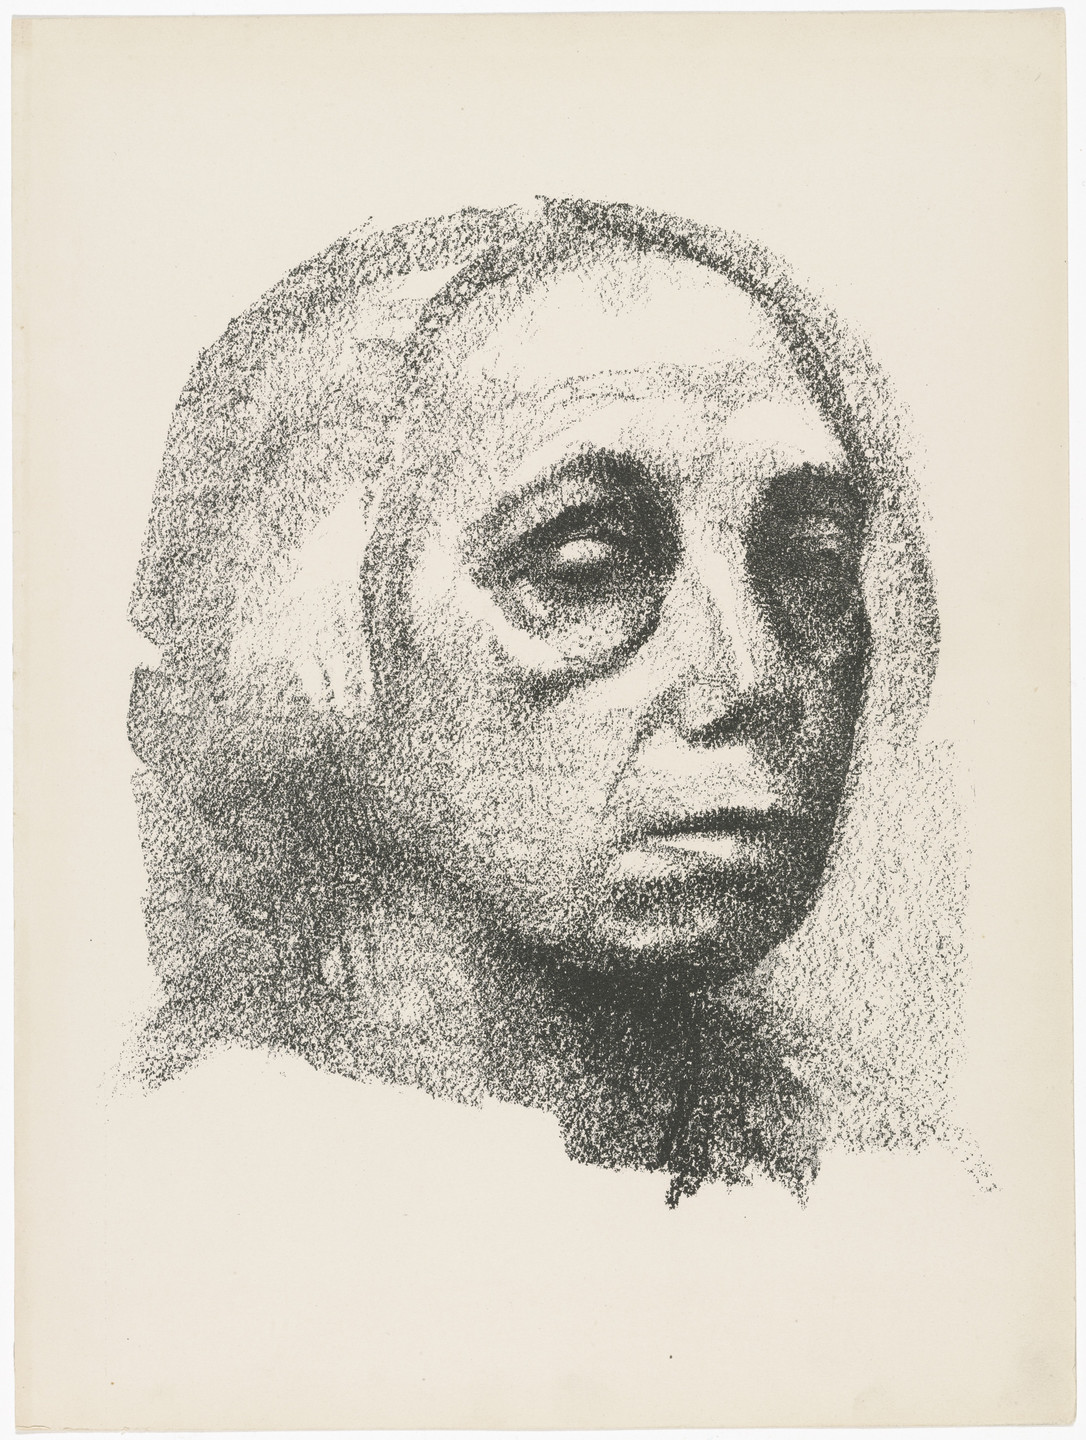 Käthe Kollwitz. Small Self-Portrait (Kleines Selbstbildnis) (plate 3) from Deutsche Graphiker der Gegenwart (German Printmakers of Our Time). 1920